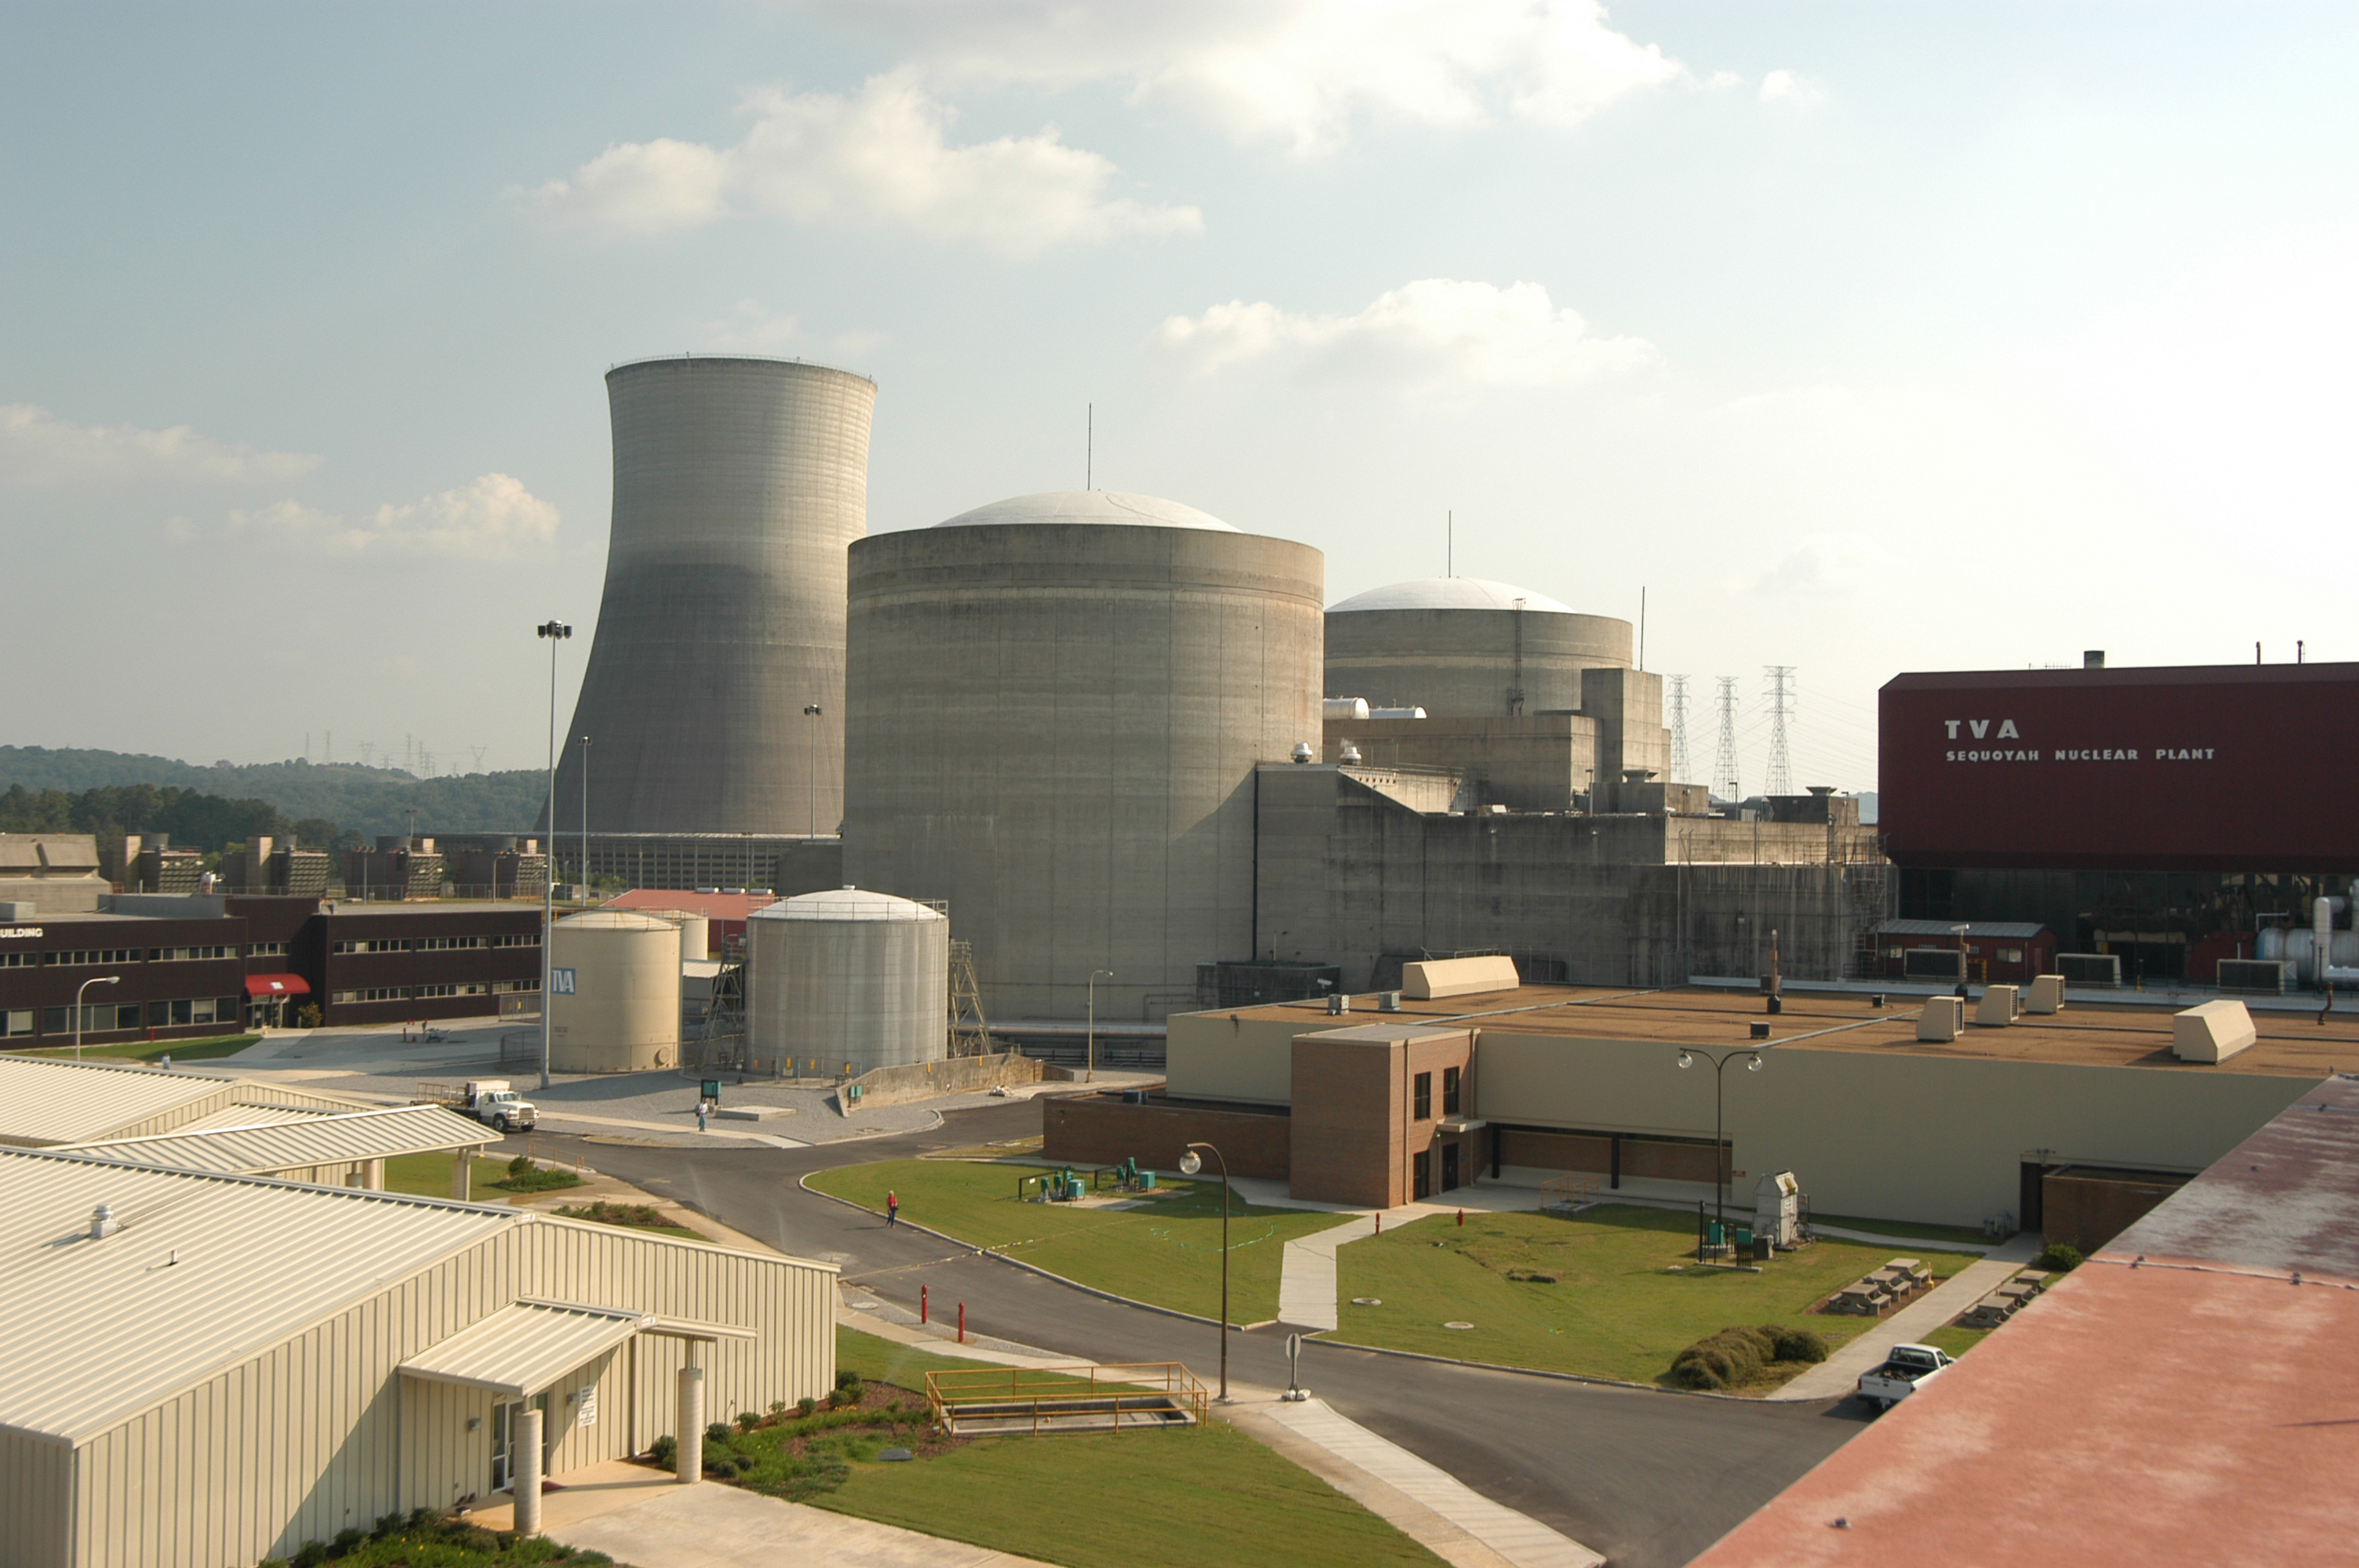 Sequoyah Nuclear Generating Station.